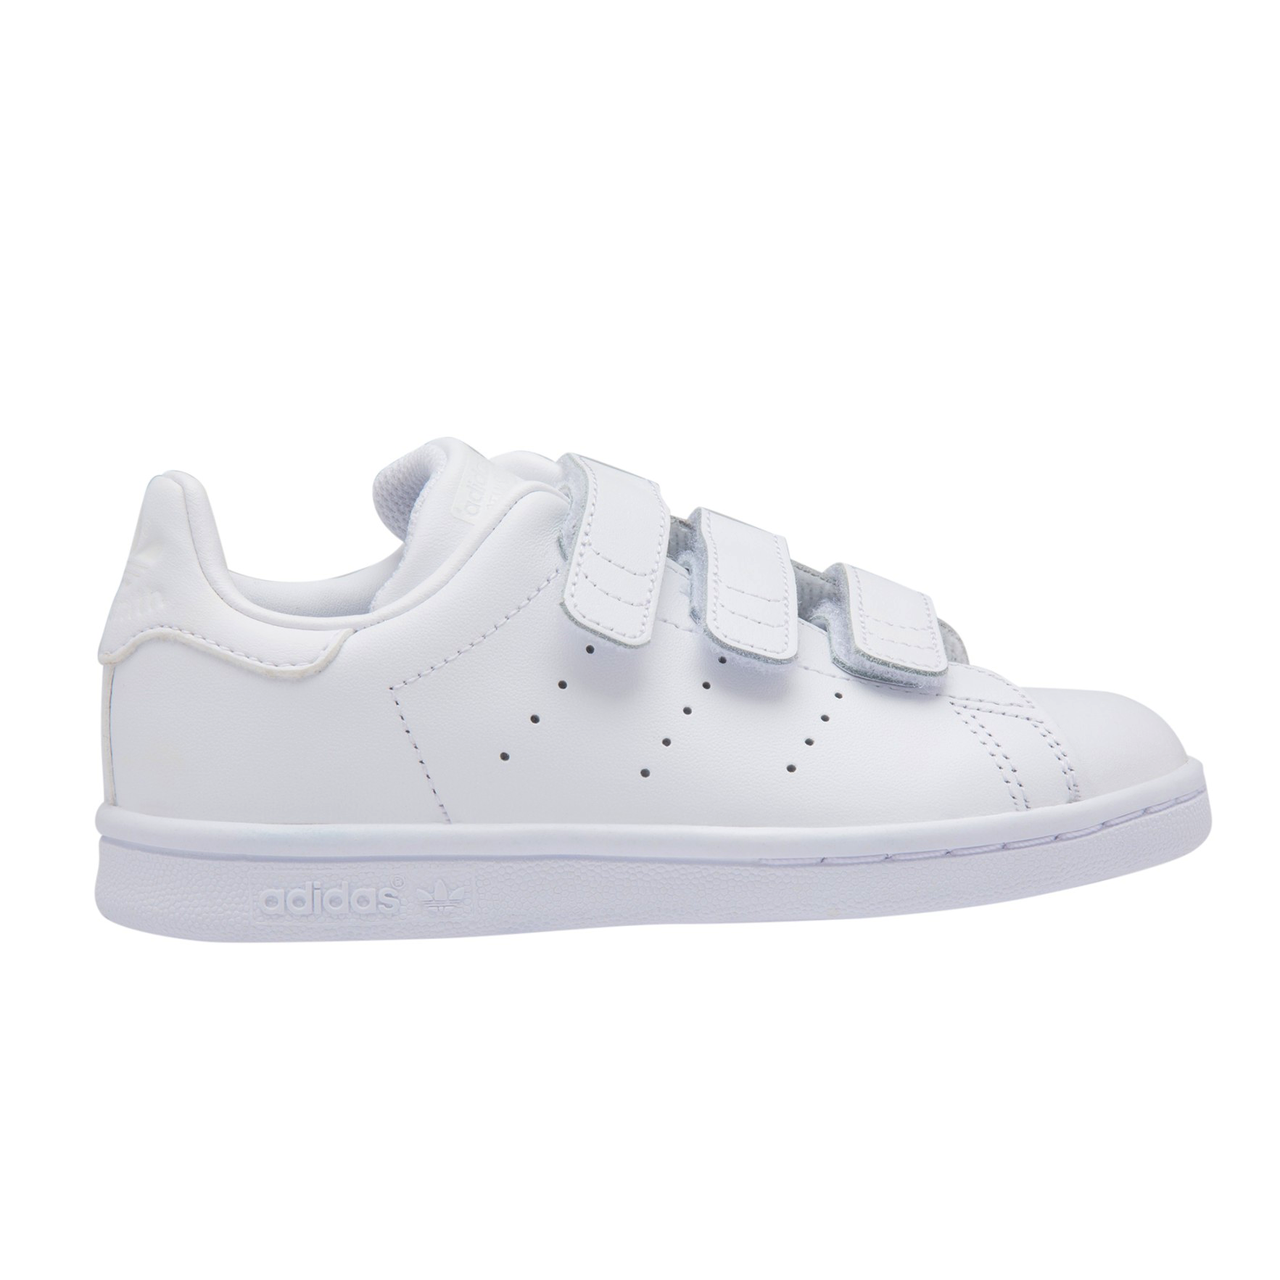 Кроссовки Adid*s Stan Smith Velcro White (реплика)